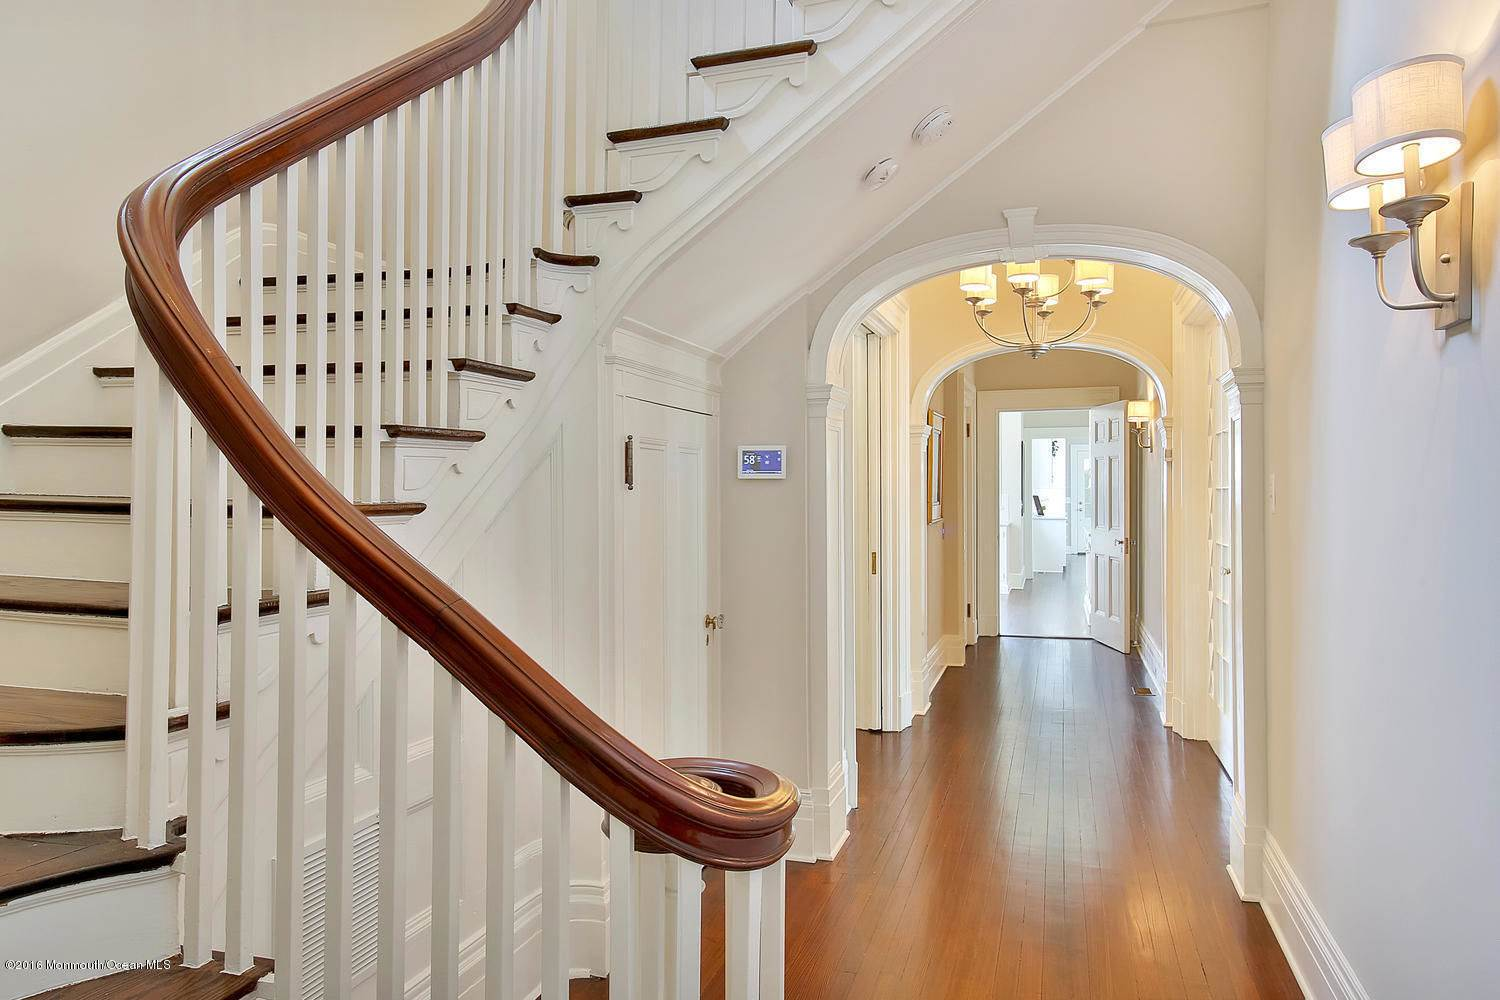 greek colonial georgian mansion architectural style waterfront home luxury mansion million dollar estate gray and white panel siding white and brown staircase arched hallway